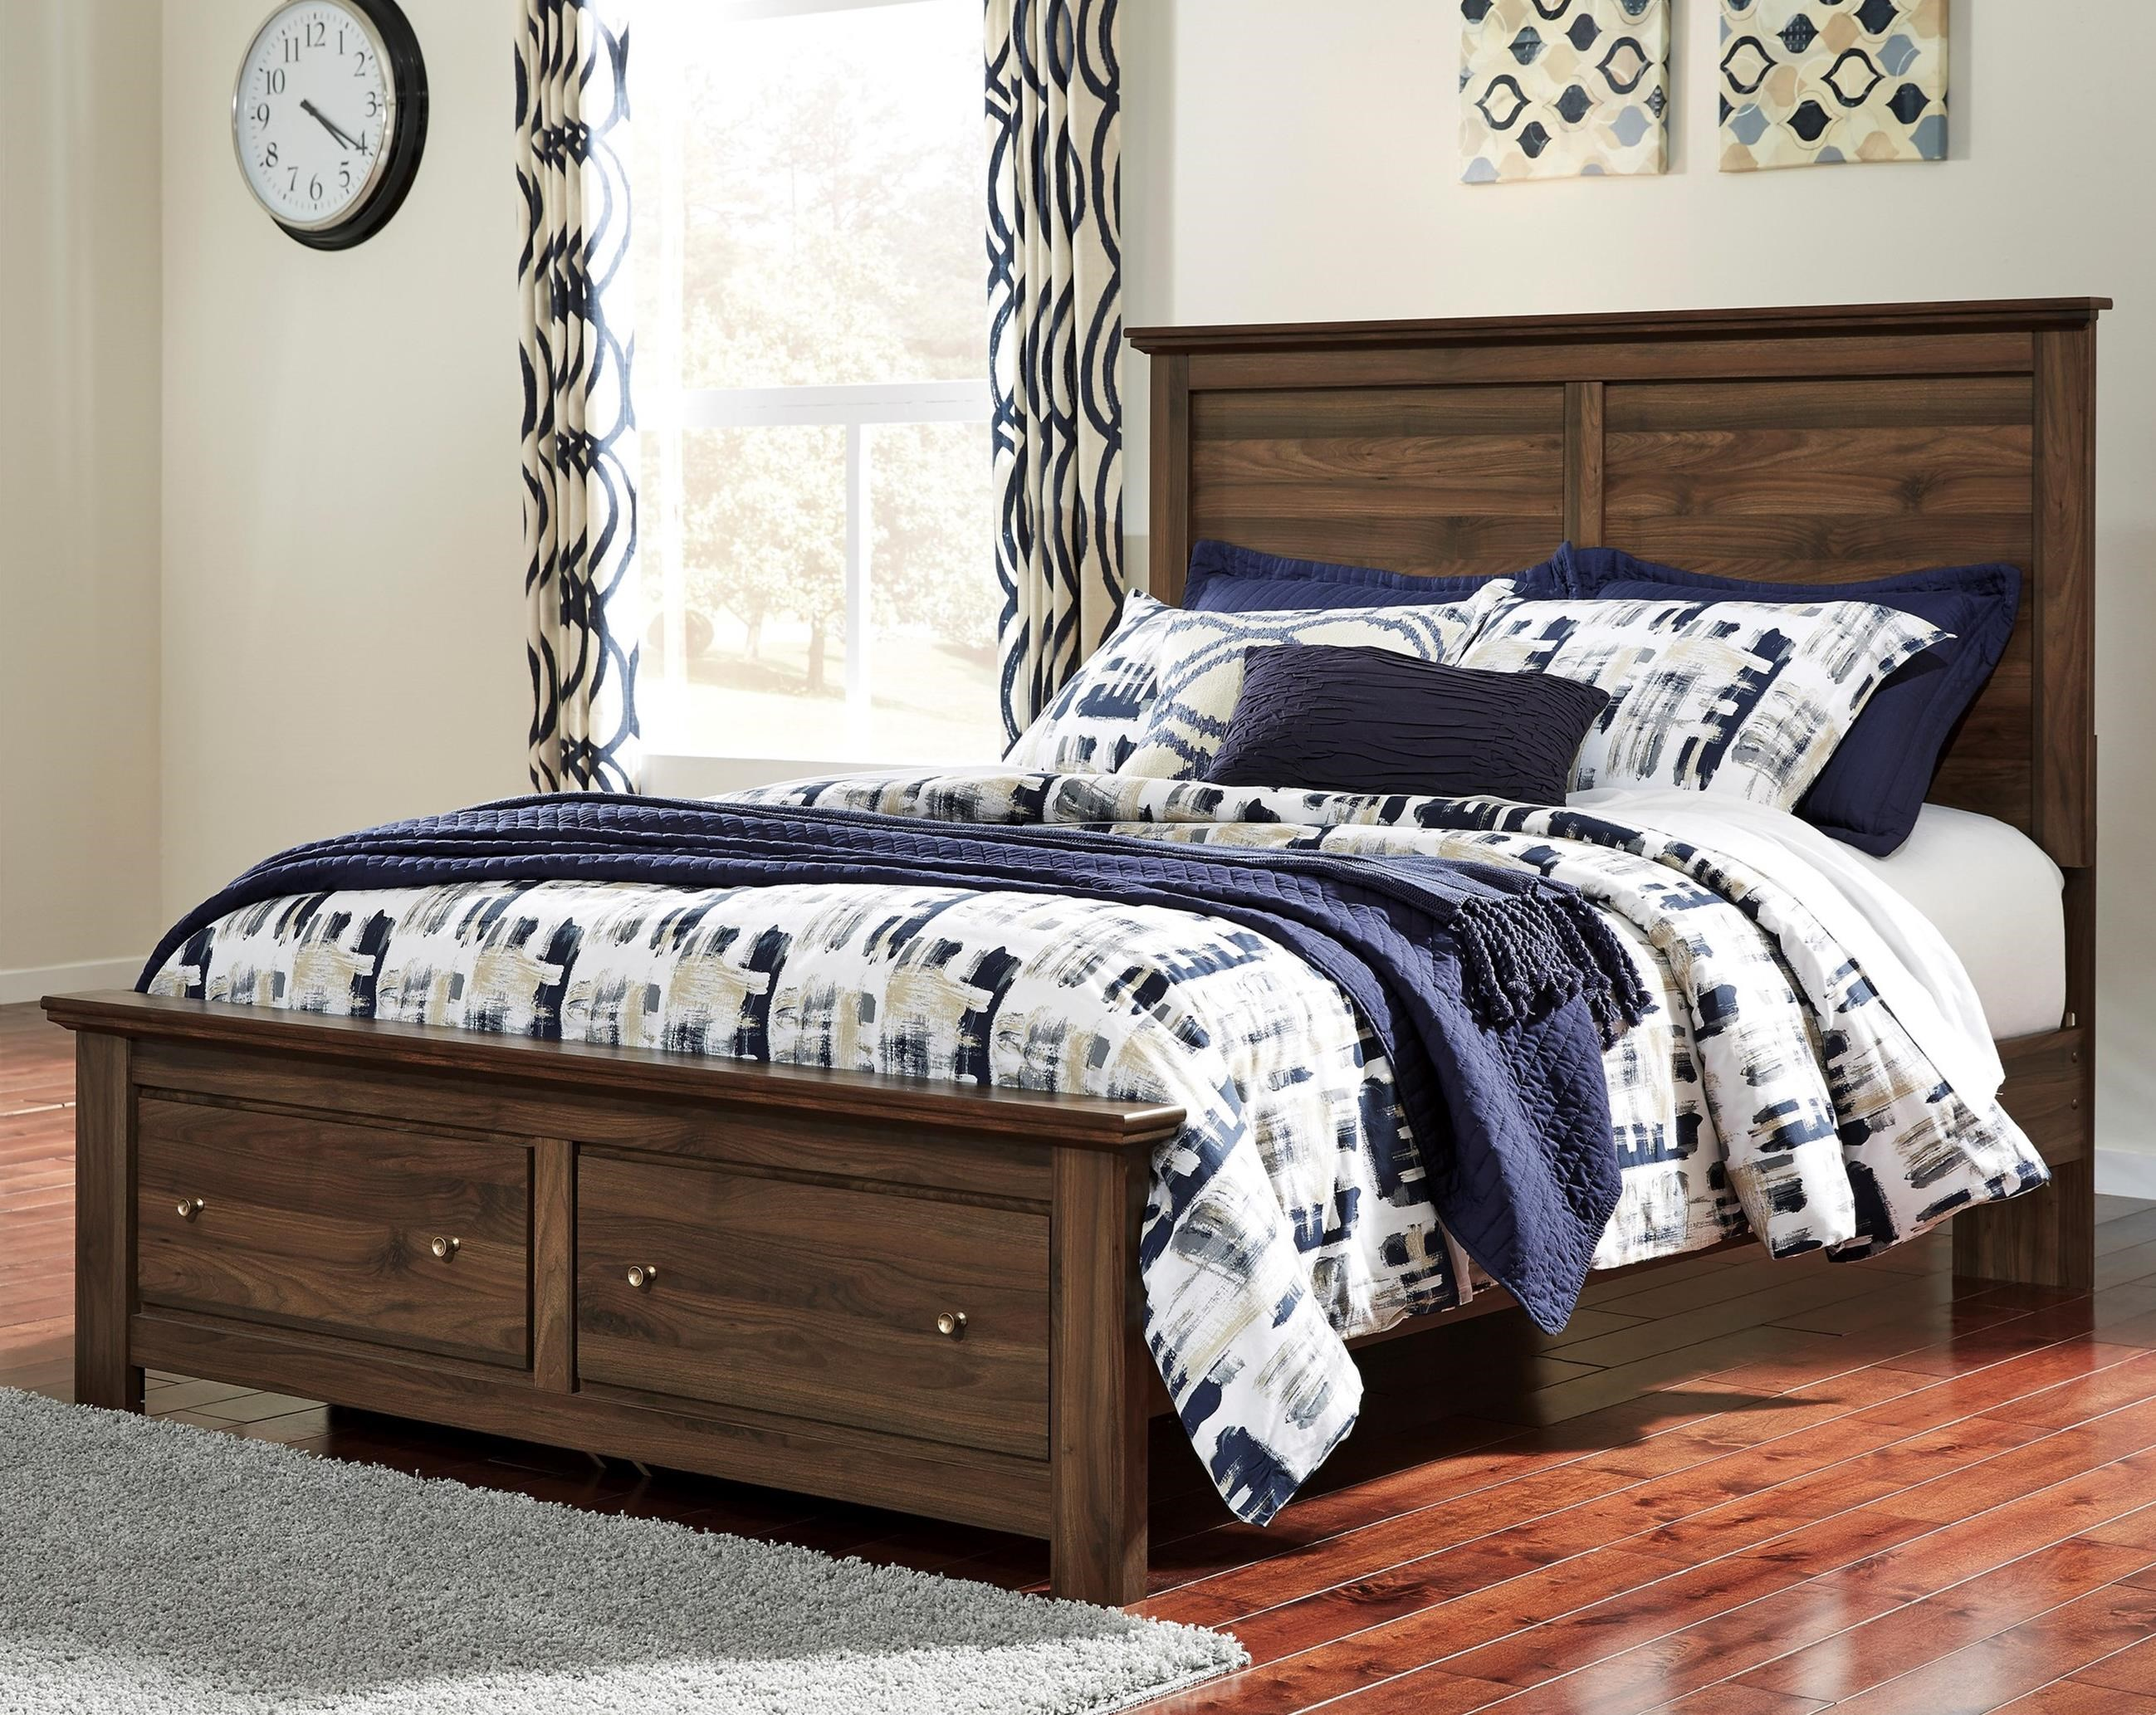 Signature Design by Ashley Burminson Queen Storage Bed - Item Number: B135-57+54S+95+B100-13